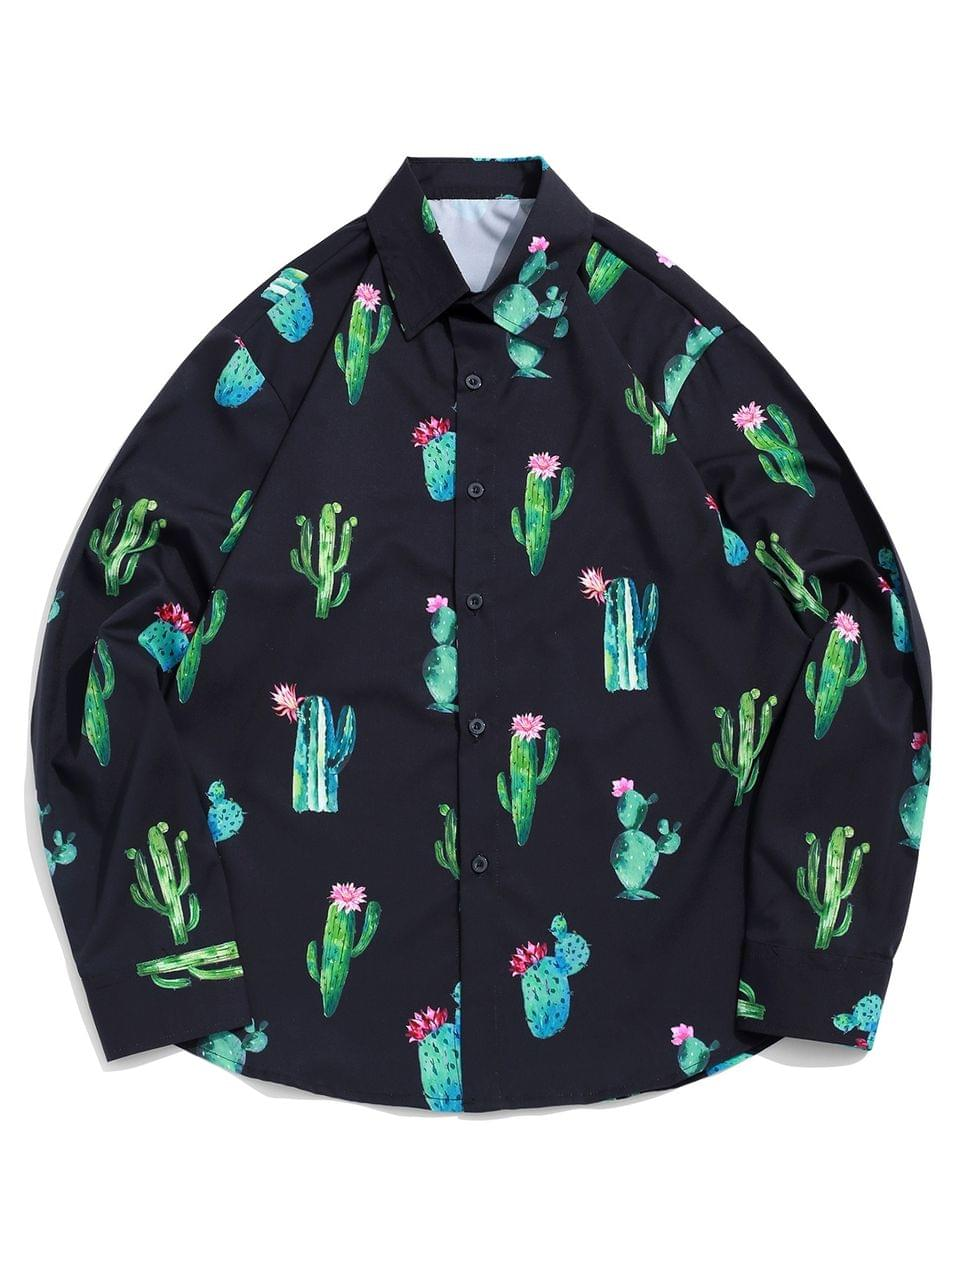 Men's Cactus And Flower Print Long Sleeve Casual Vacation Shirt - Black S